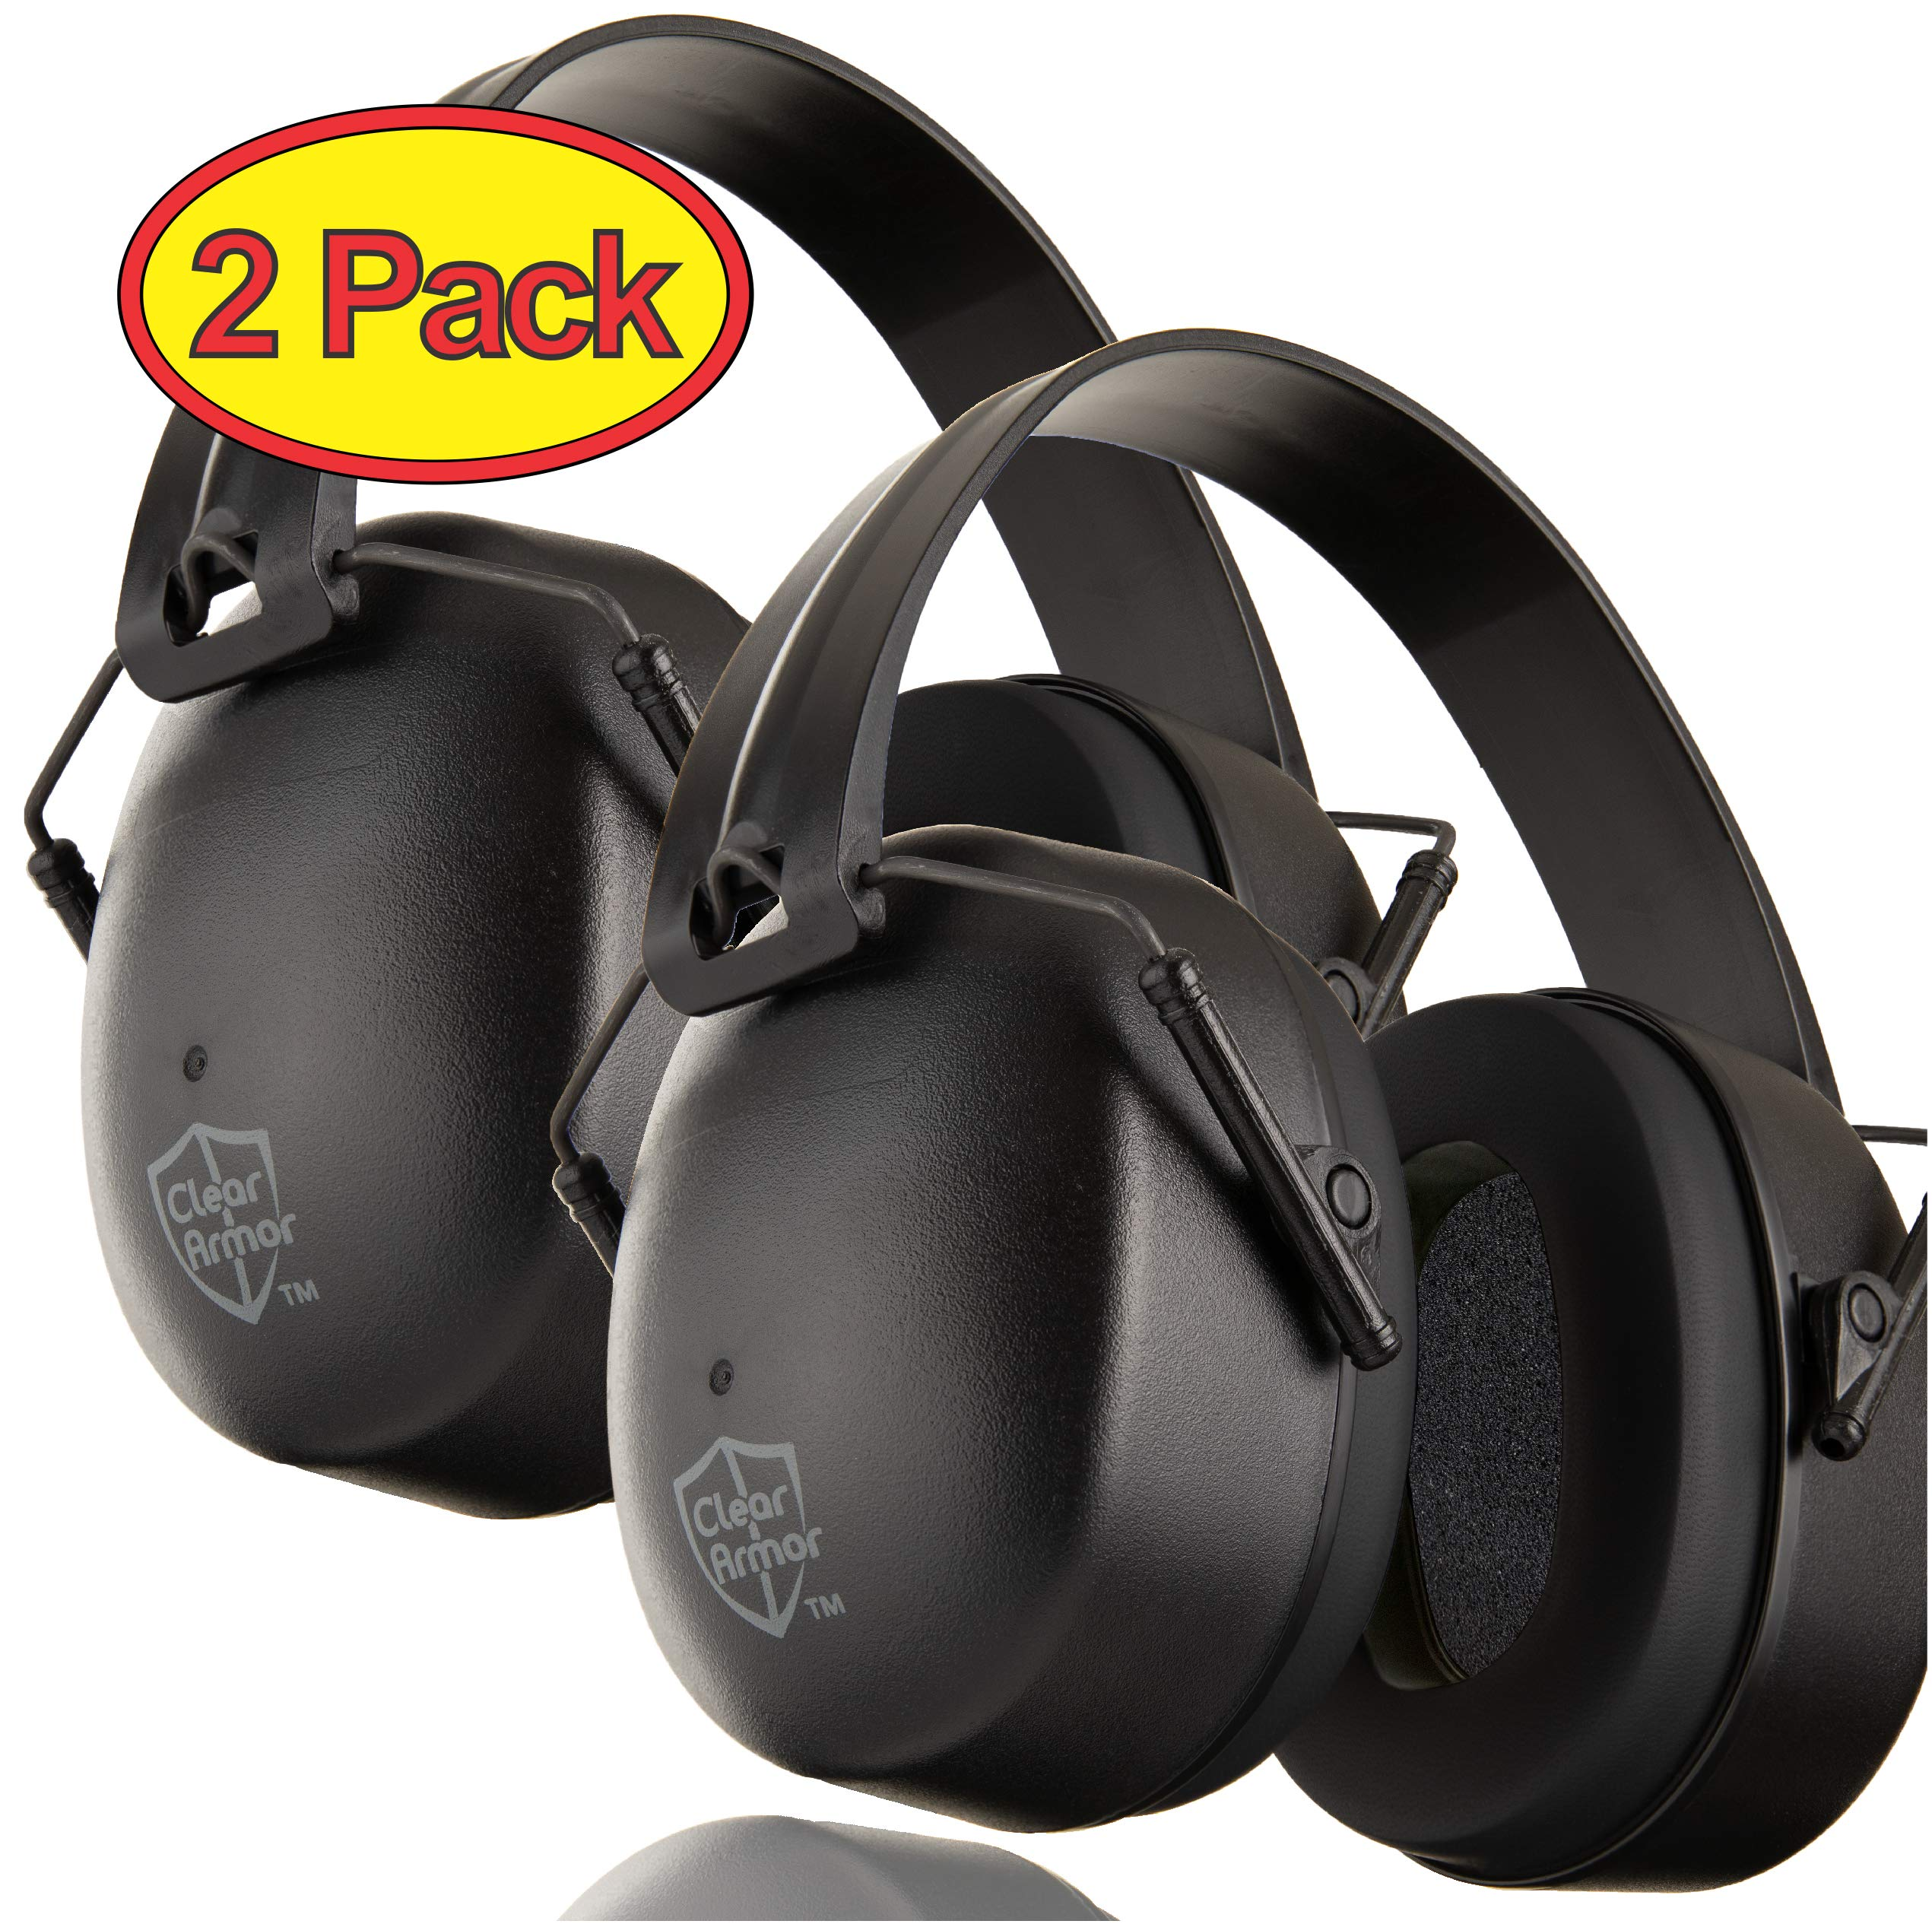 ClearArmor 2 Pack - Safety Shooting Ear Muffs Hearing Ear Protection - 31.5 dB SNR Noise Reduction - Comfortable Earmuffs That Work for Hunting, Gun Range, Mowing